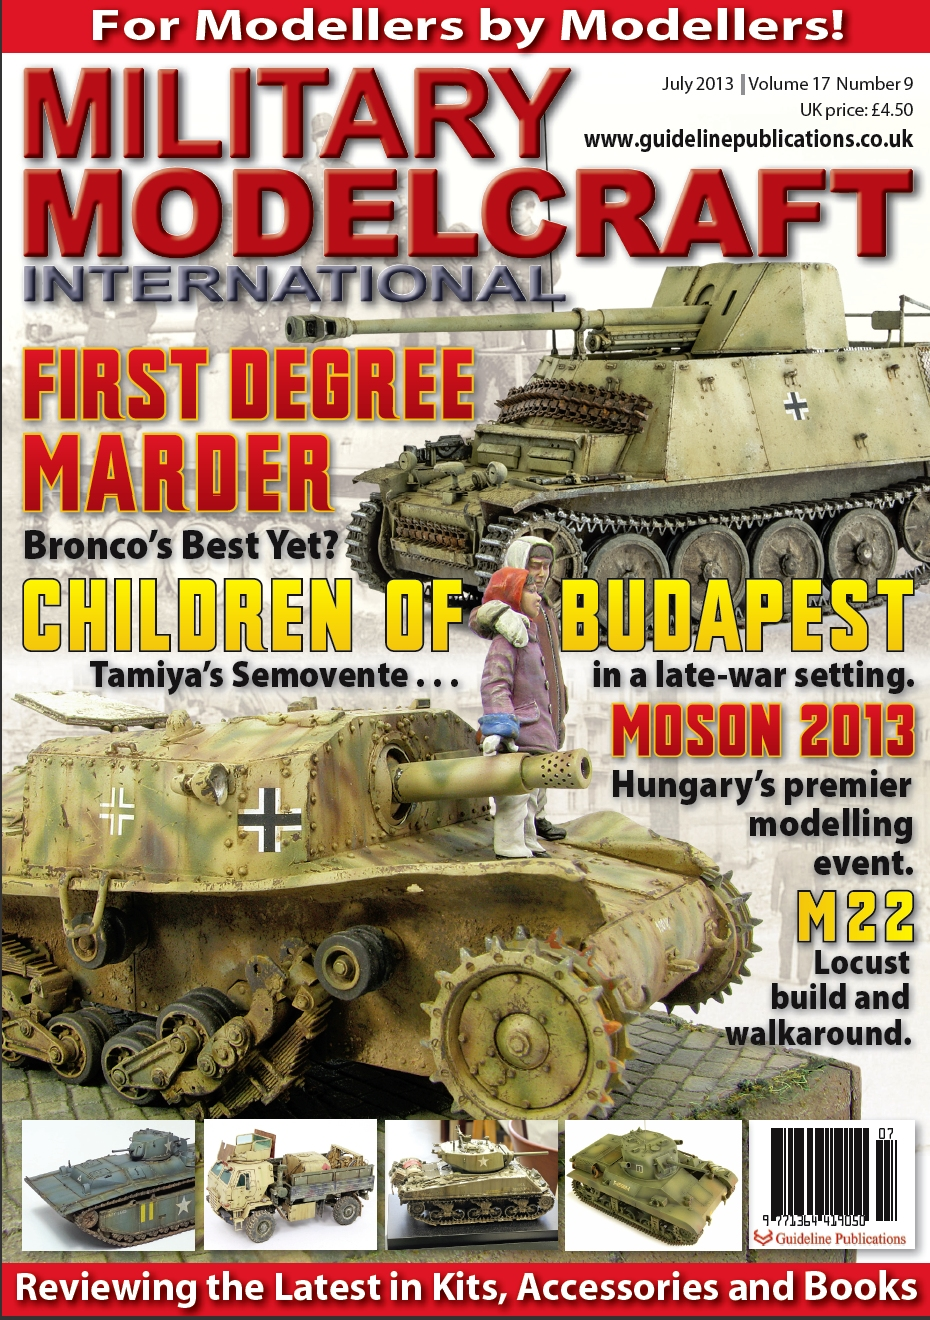 Guideline Publications Military Modelcraft July 2013 vol 17 - 9